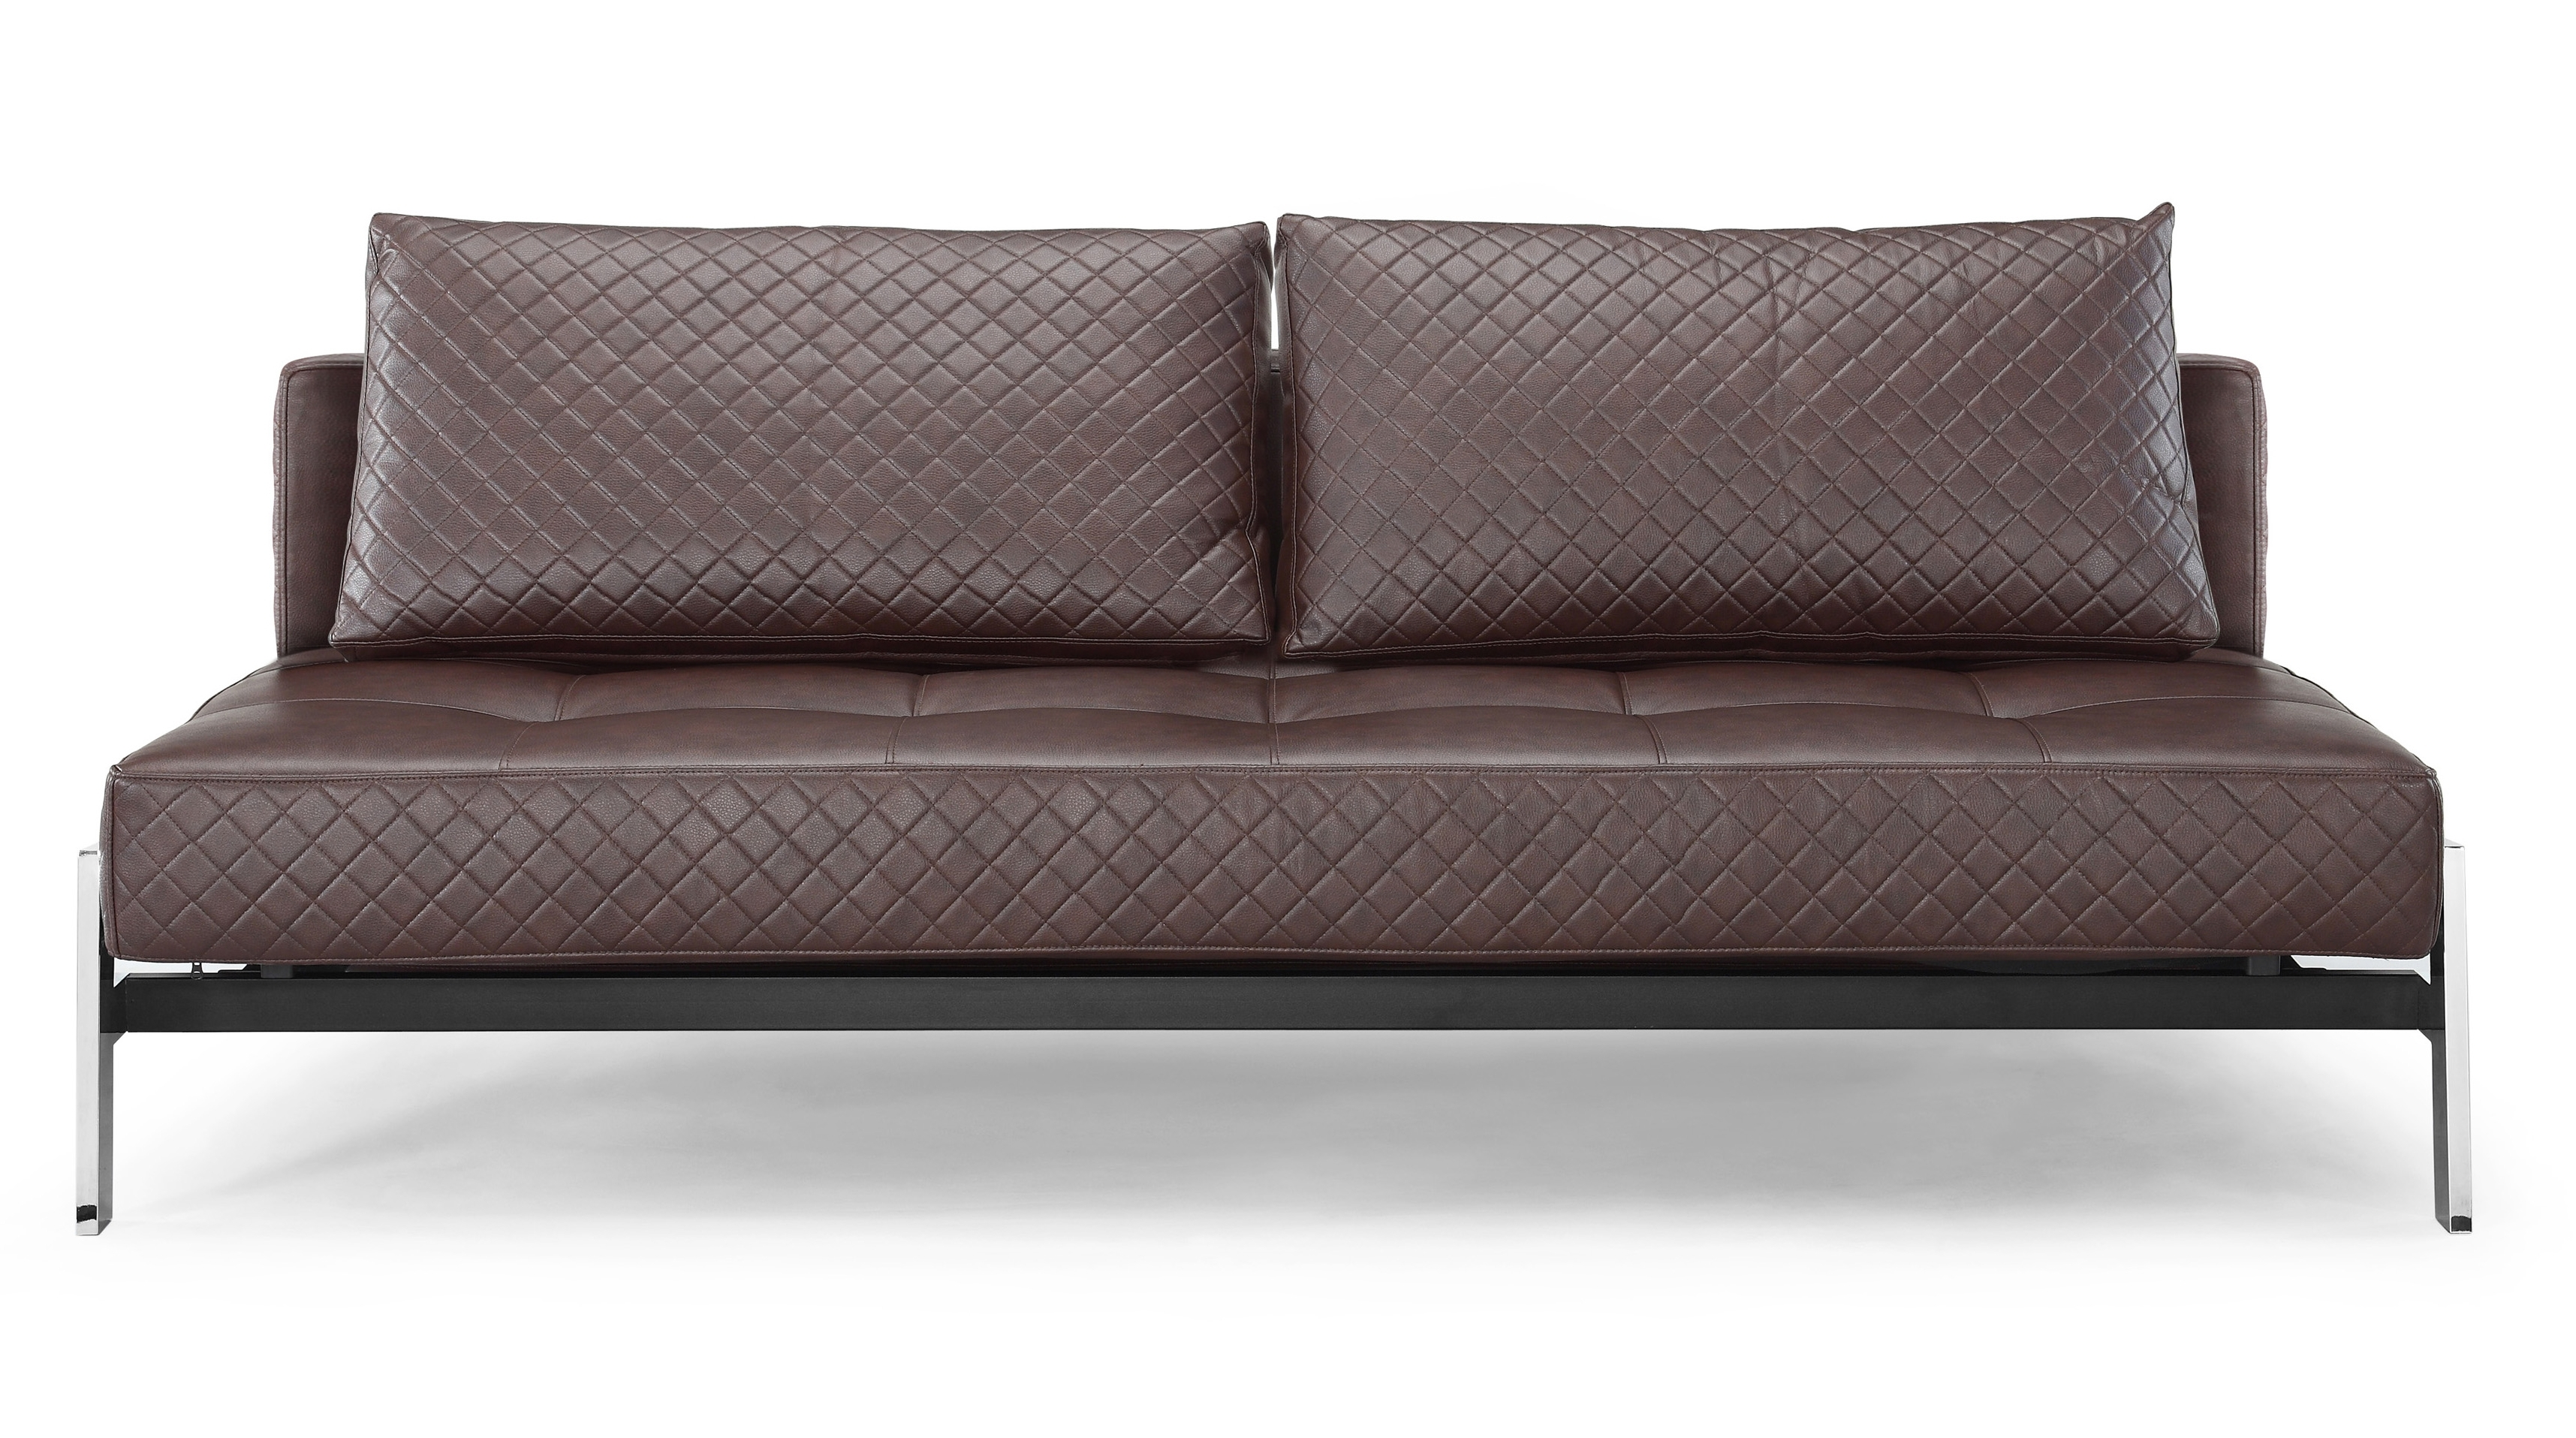 Convertible Sofas Pertaining To Most Up To Date Lifestyle Solutions Denmark Convertible Sofa Mc Dem (View 14 of 20)